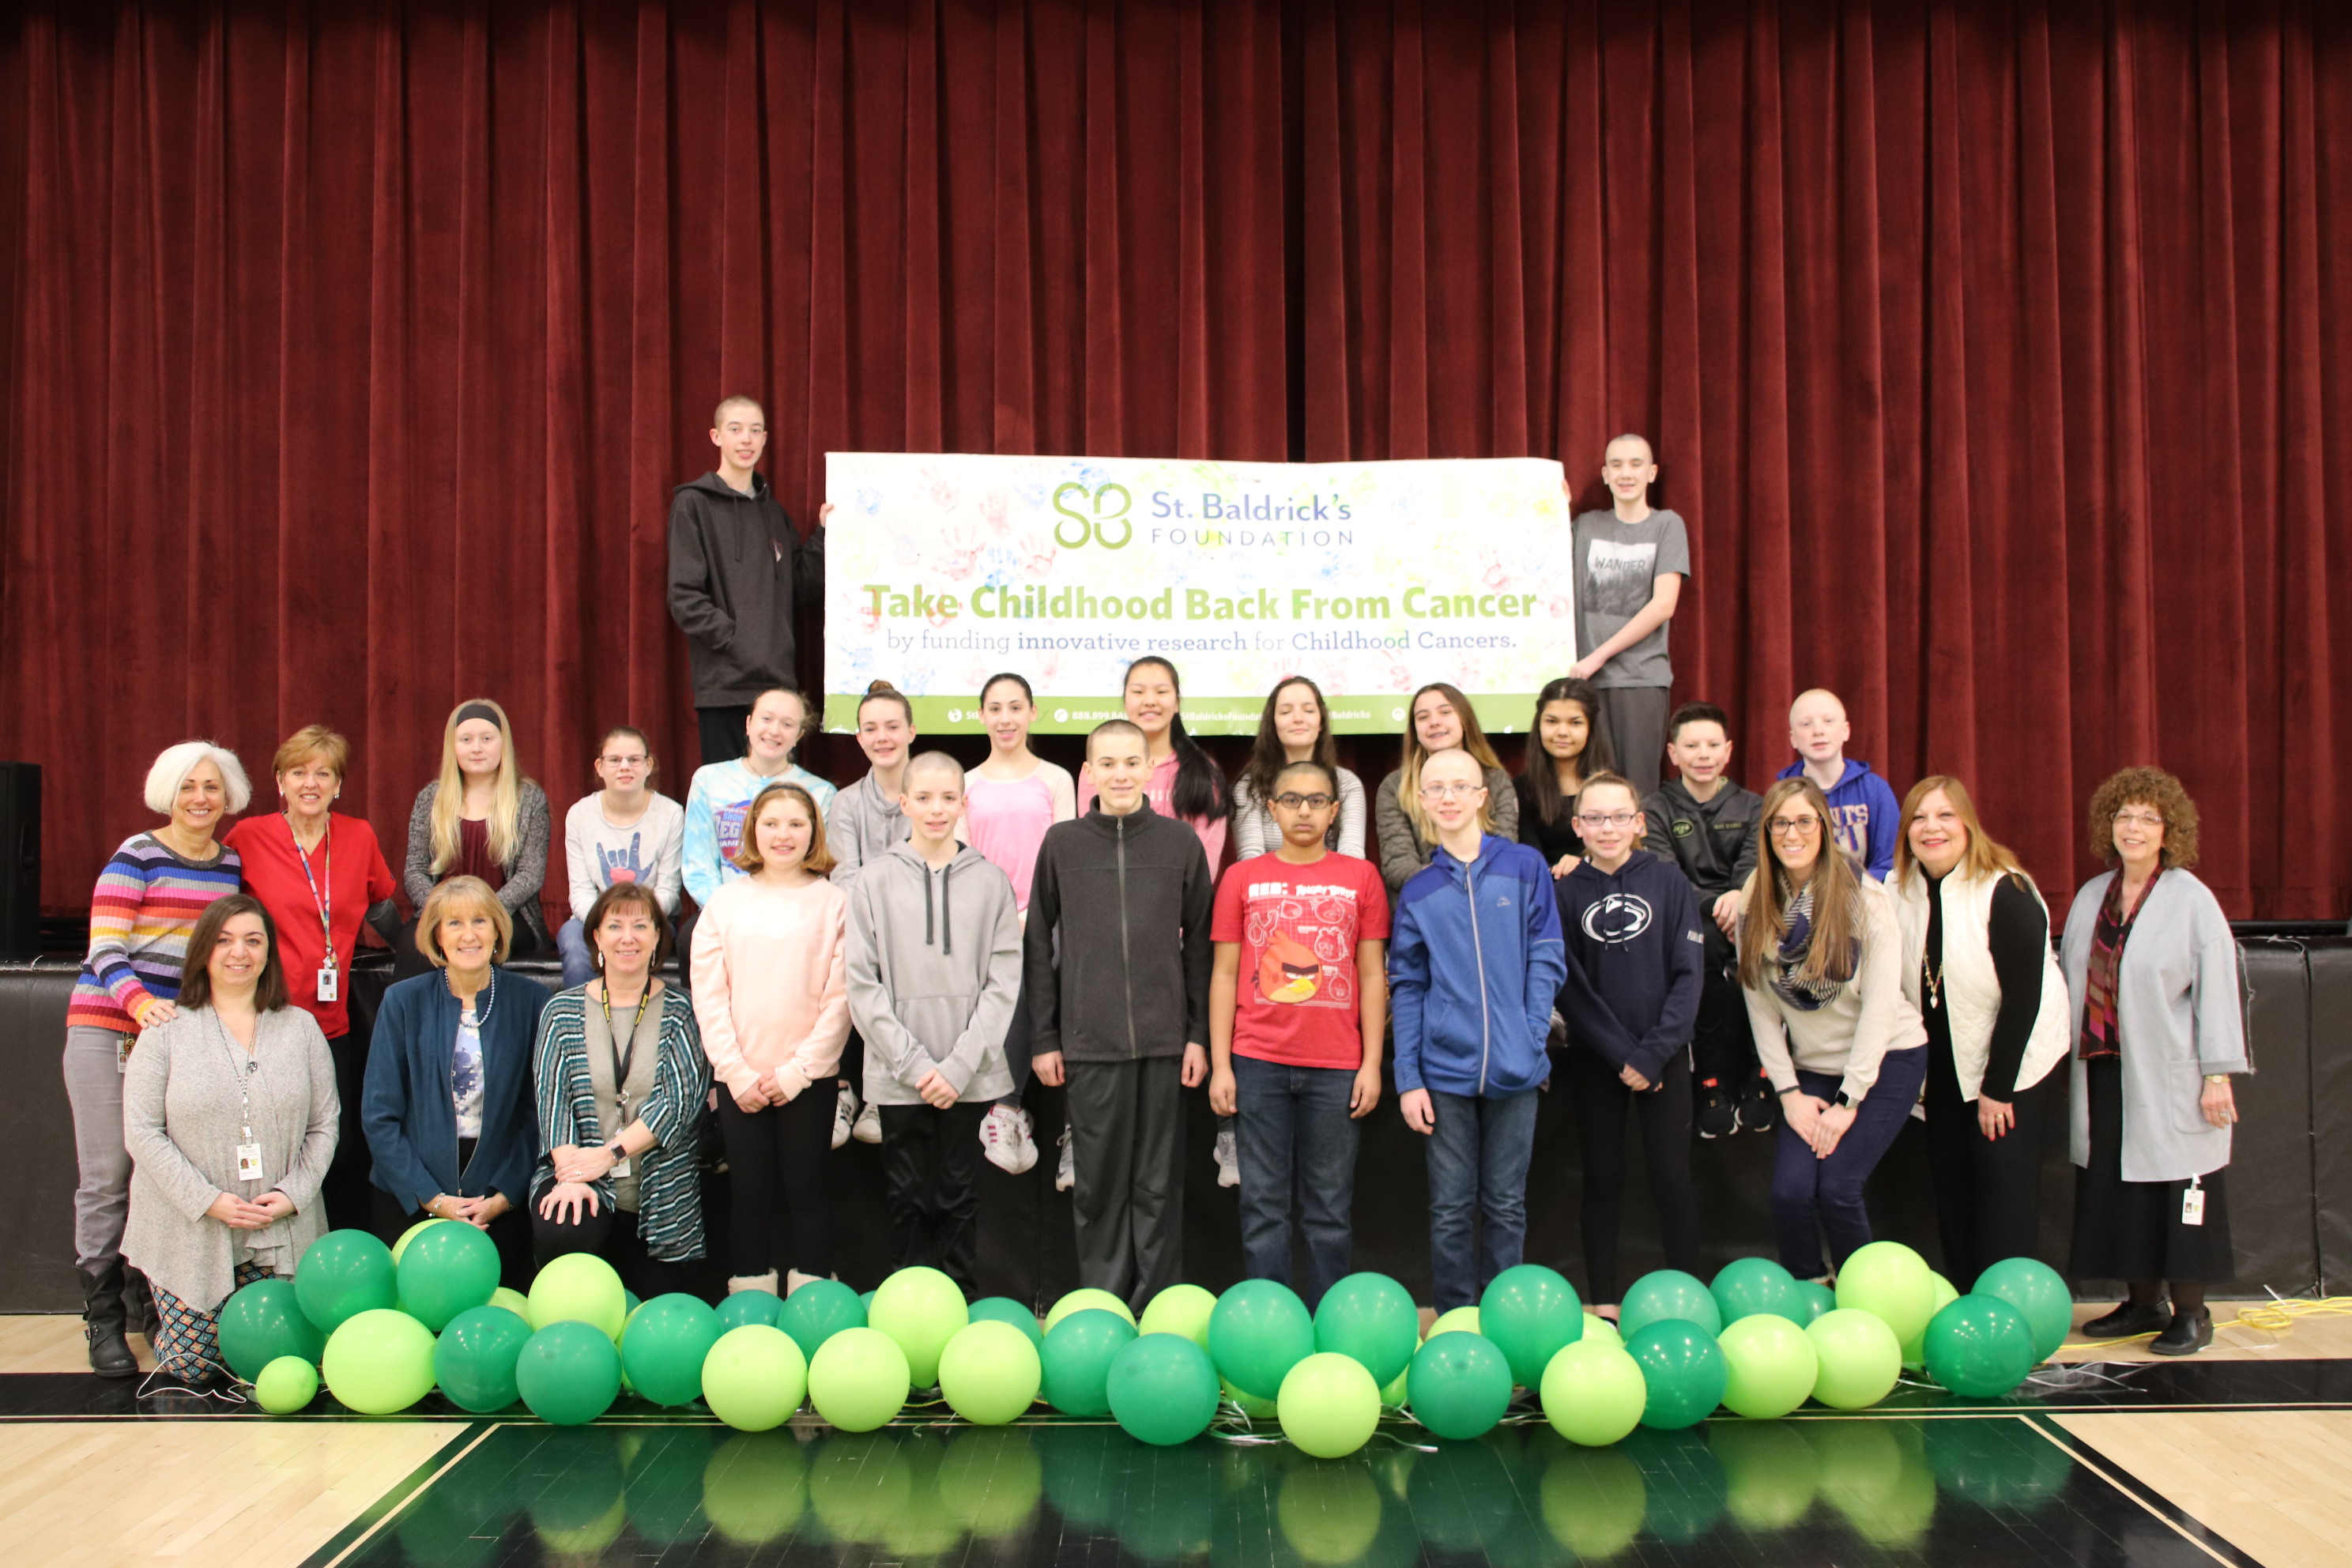 AMITY REGIONAL SCHOOL DISTRICT NO. 5 ST. BALDRICK'S FOUNDATION OF GIVING HAIR AND HOPE